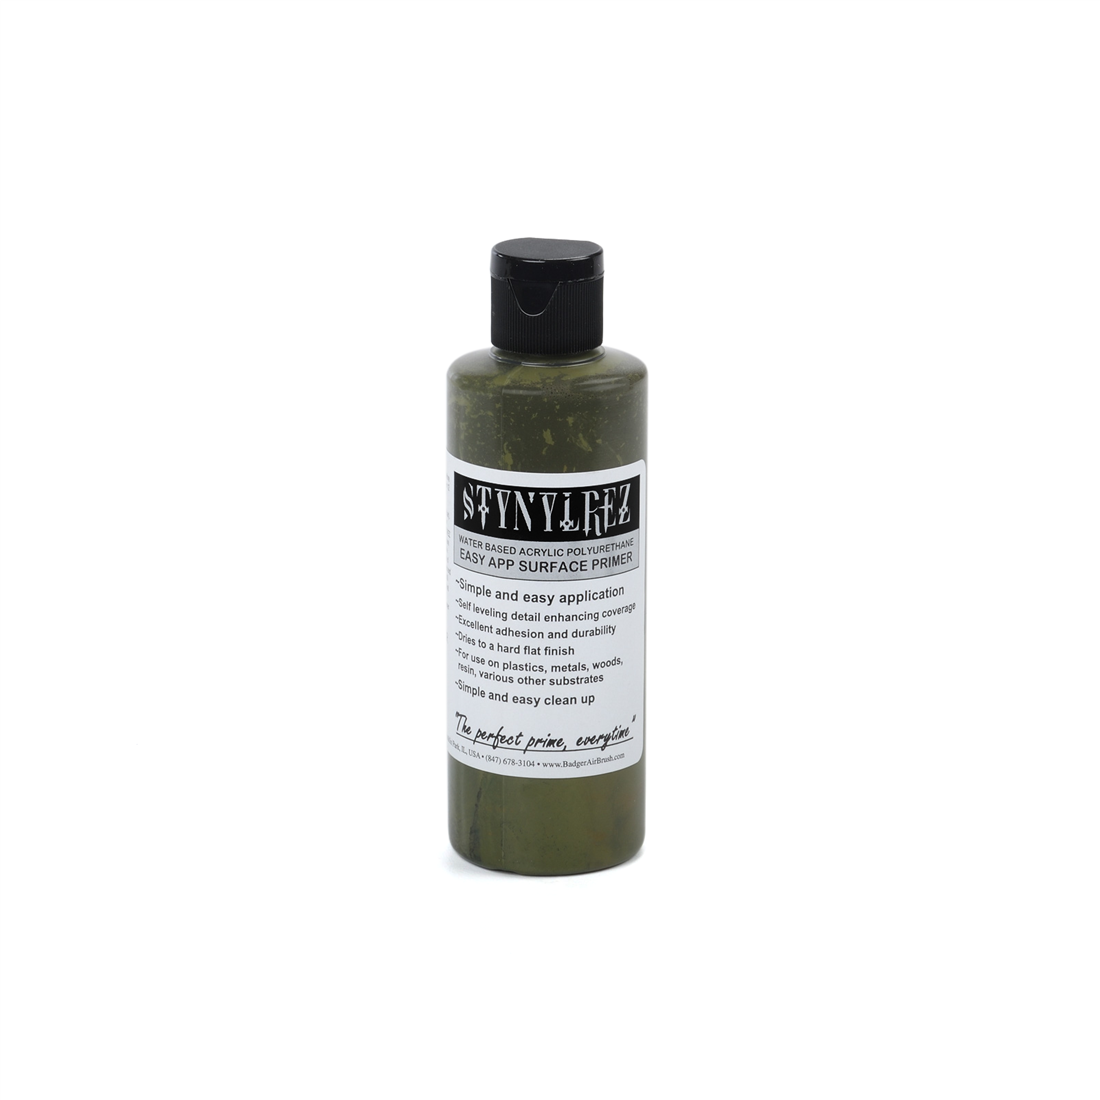 405 Badger Stynylrez verde 120 ml.